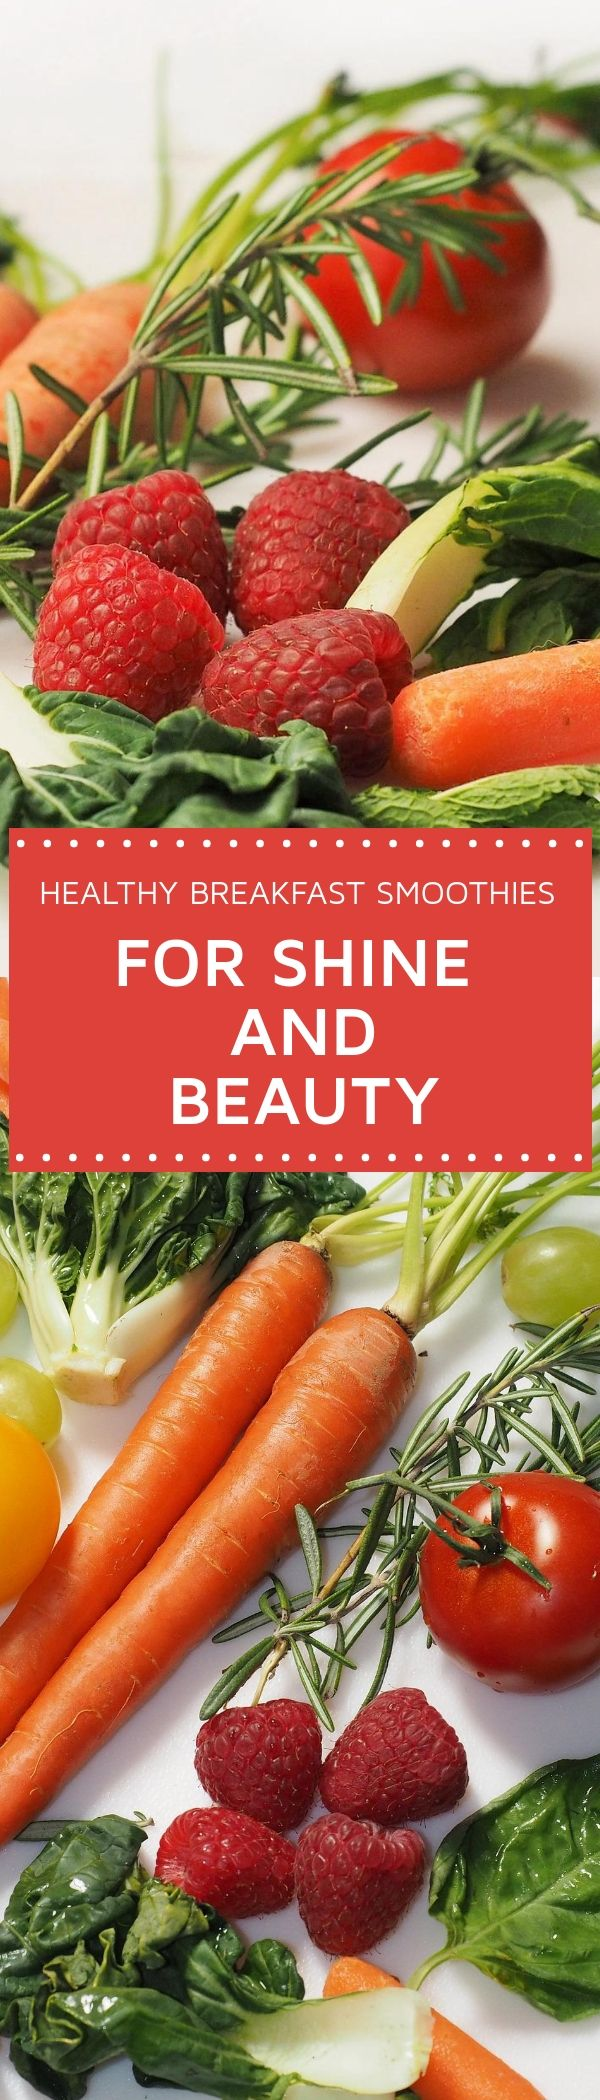 20 RECIPES TO LOSE WEIGHT, BOOST ENERGY AND PROMOTE OVERALL WELLNESS Top Blenders Energy Smoothies Meal Replacement Shakes Tropical Smoothies Green Smoothies Smoothies for Kids